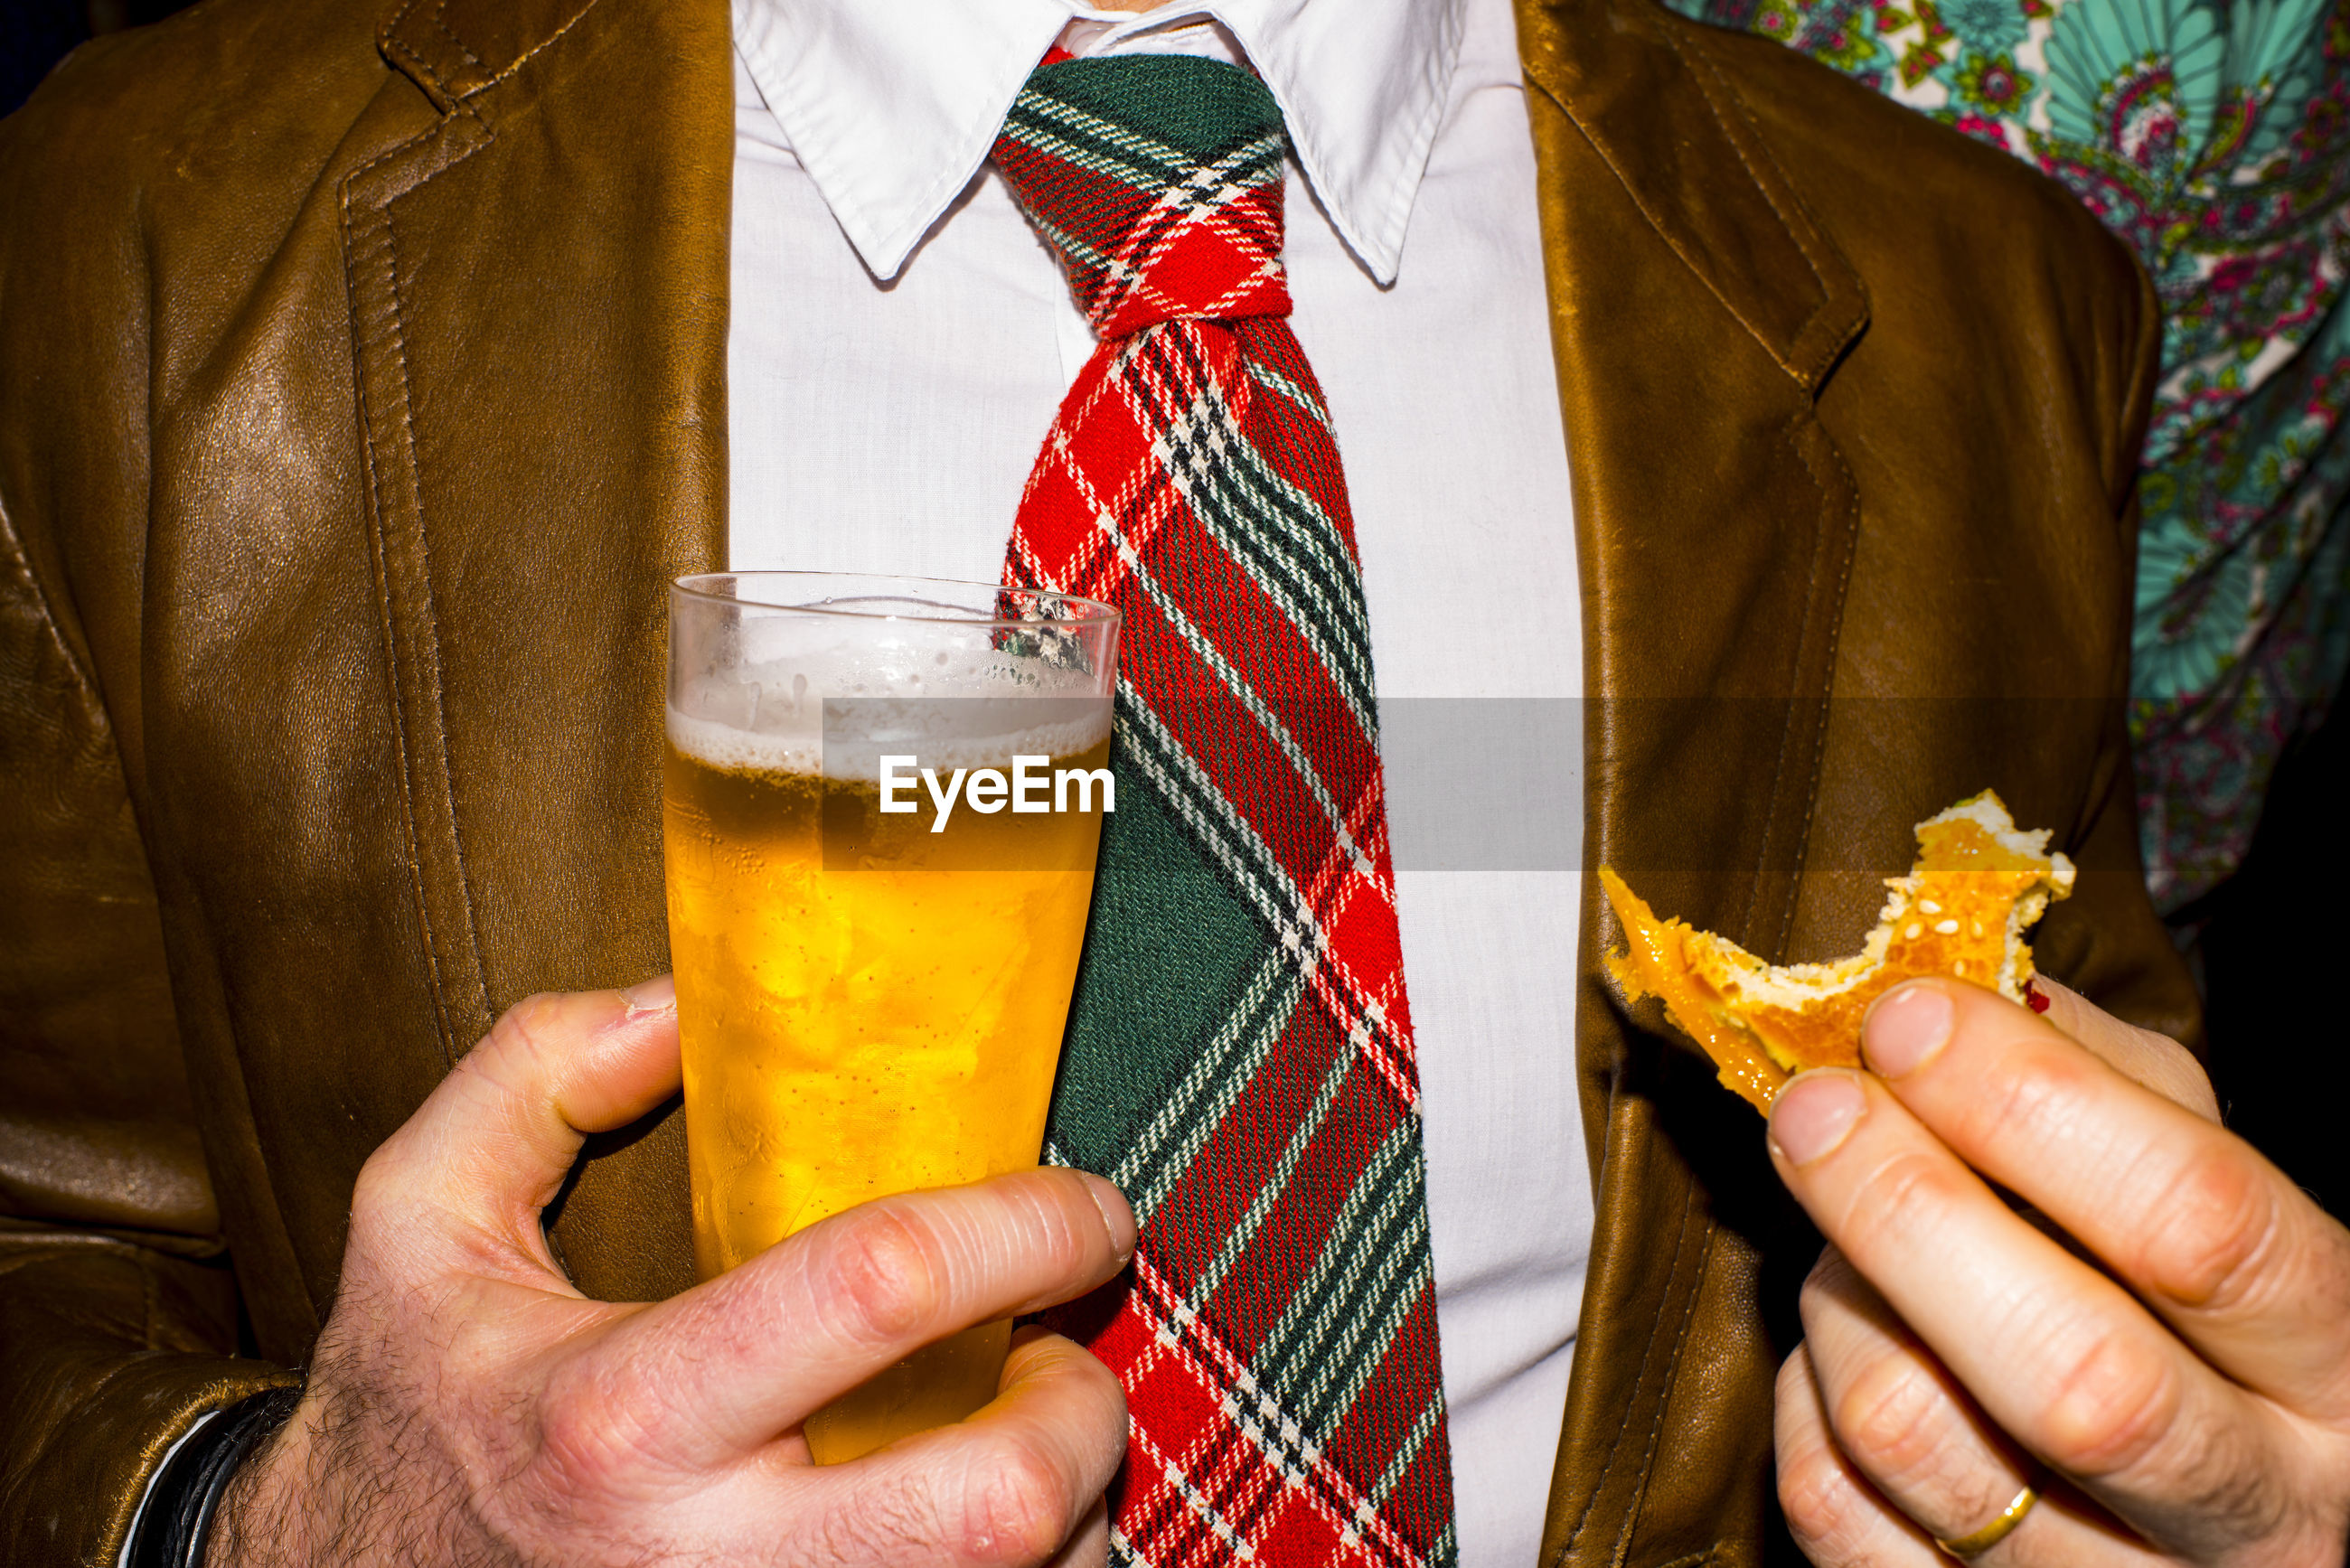 Midsection of man holding food and drink